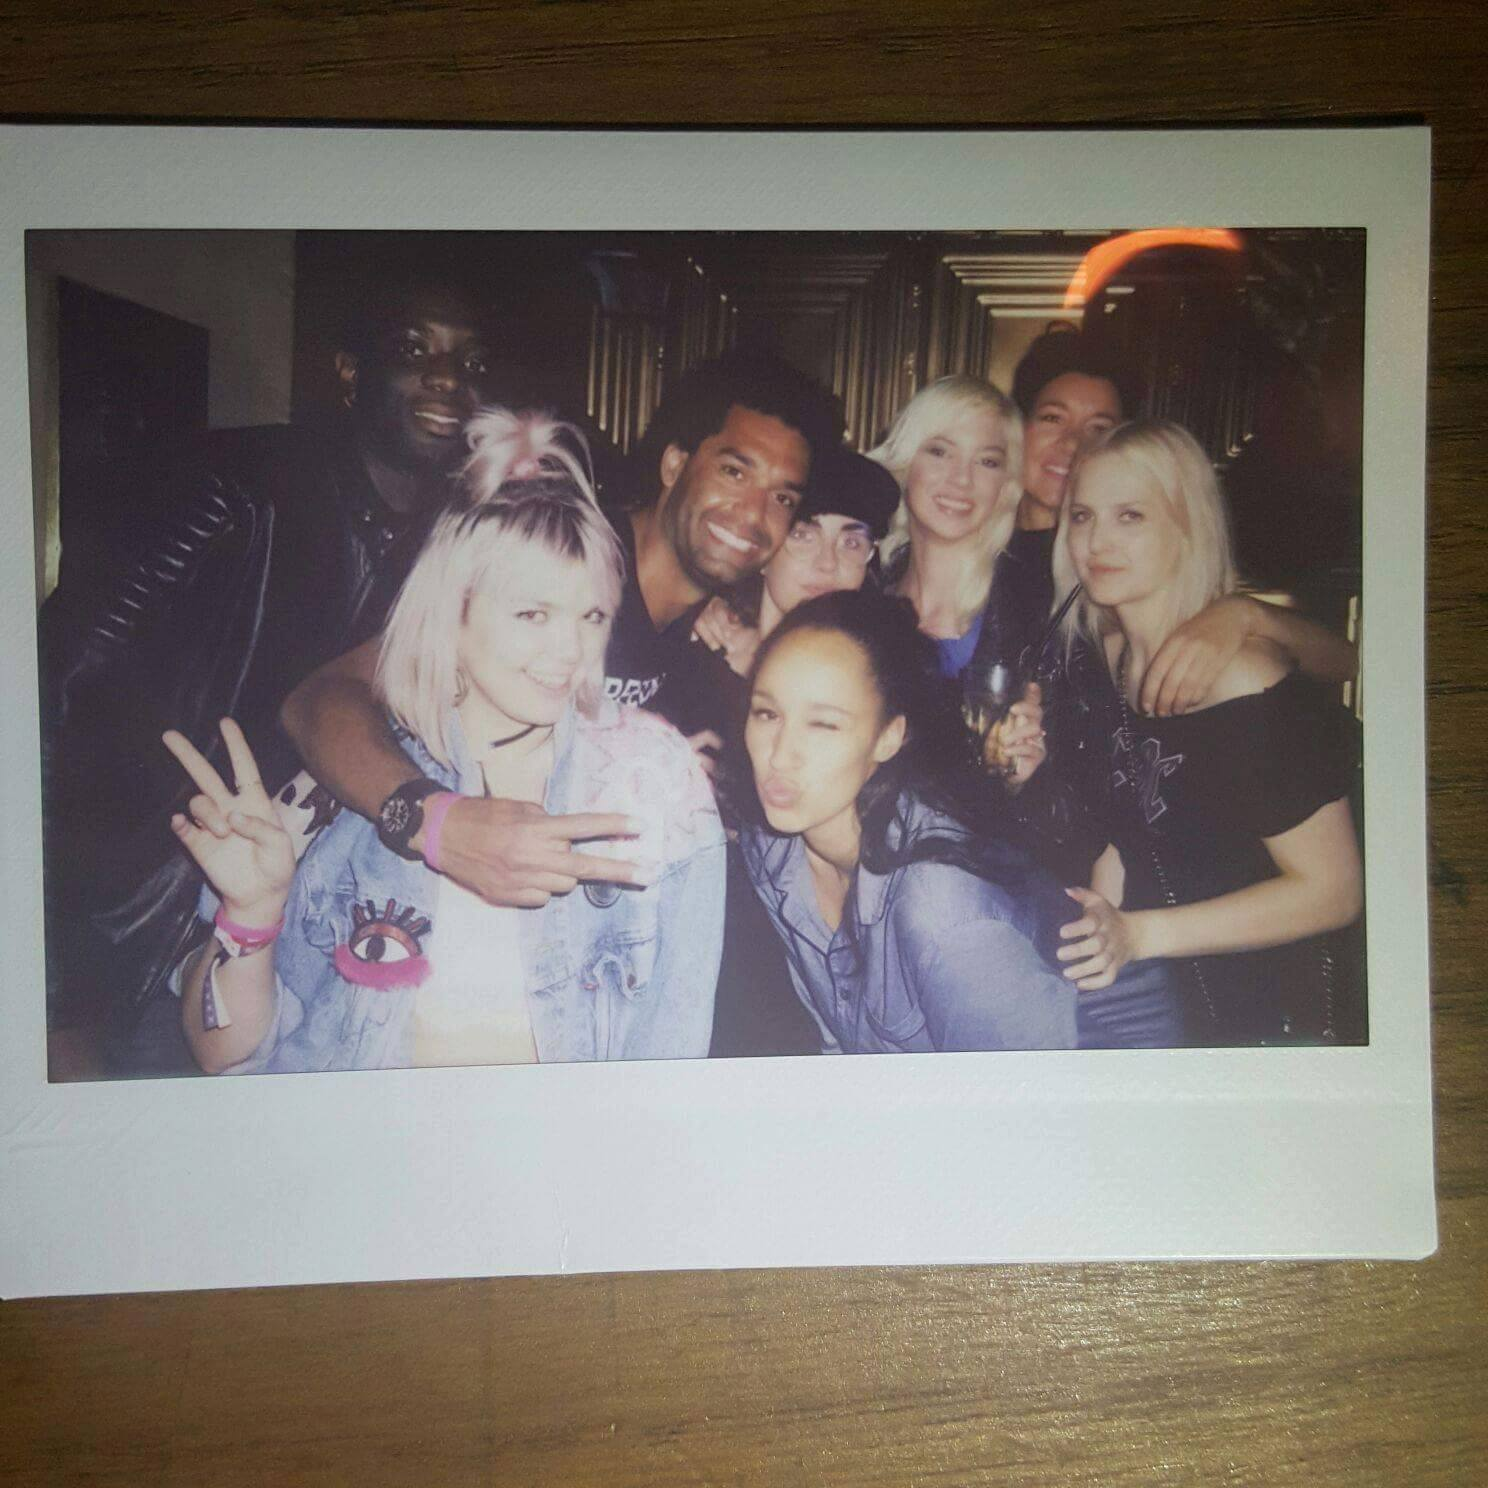 Who is that blonde photo diary